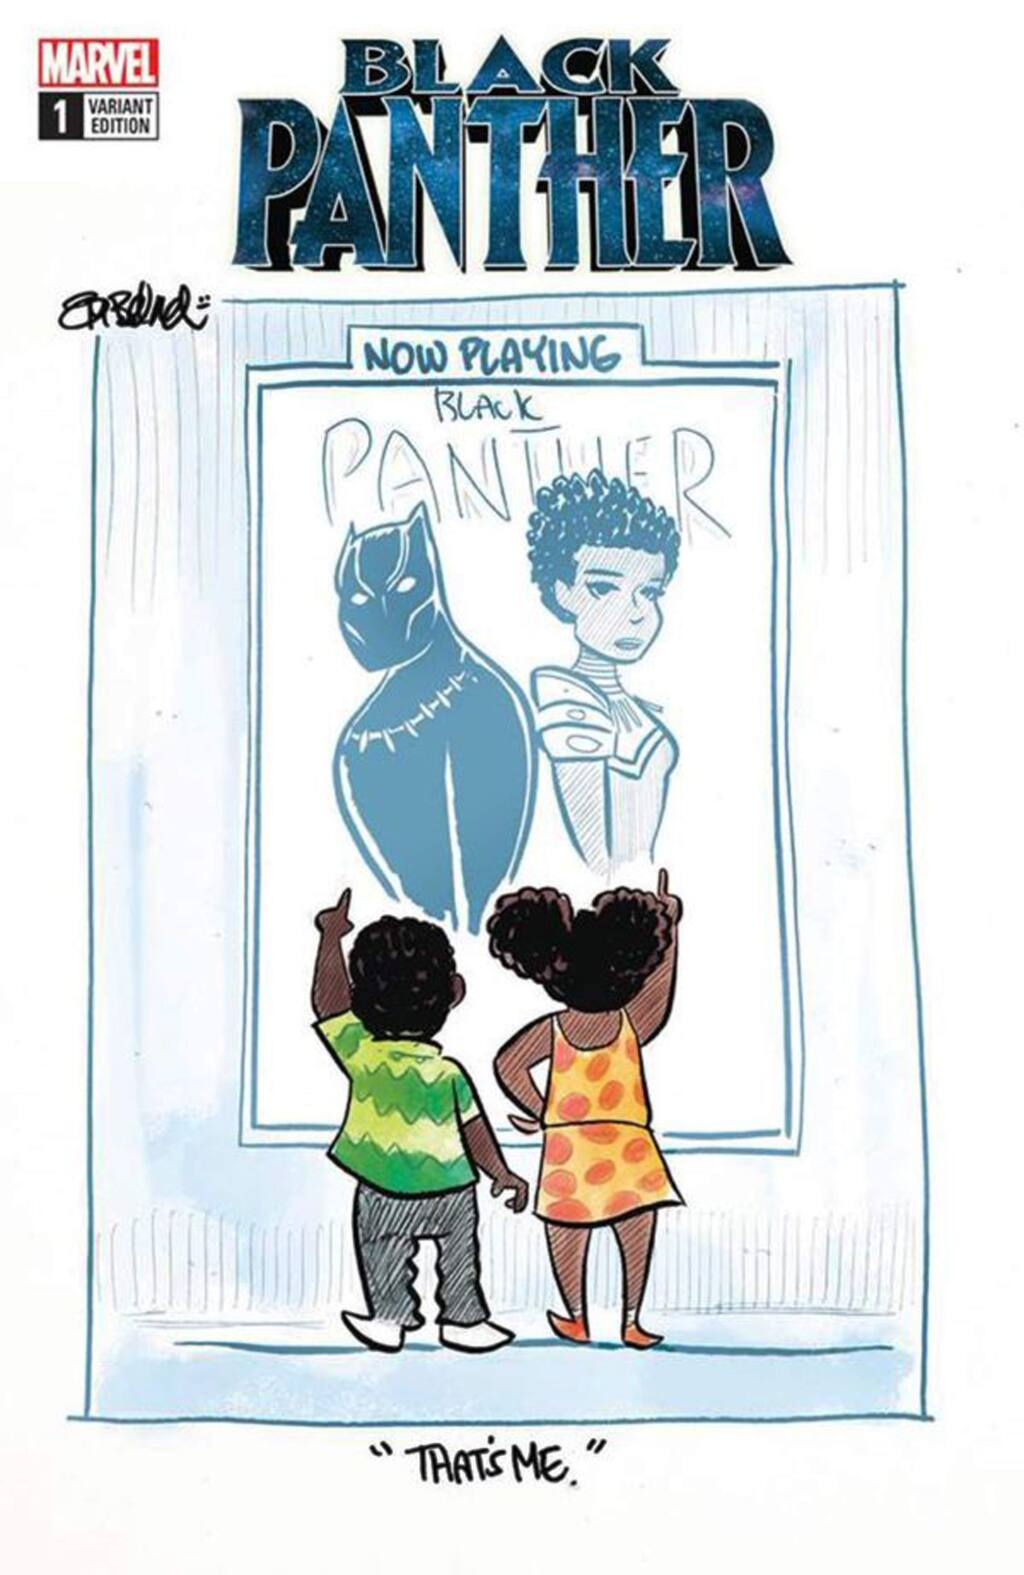 Cartoonist Tom Beland posted this cartoon on the release of 'Black Panther,' focusing on the self-identification aspects of the movie and the importance of representation. (comicsbeat.com)